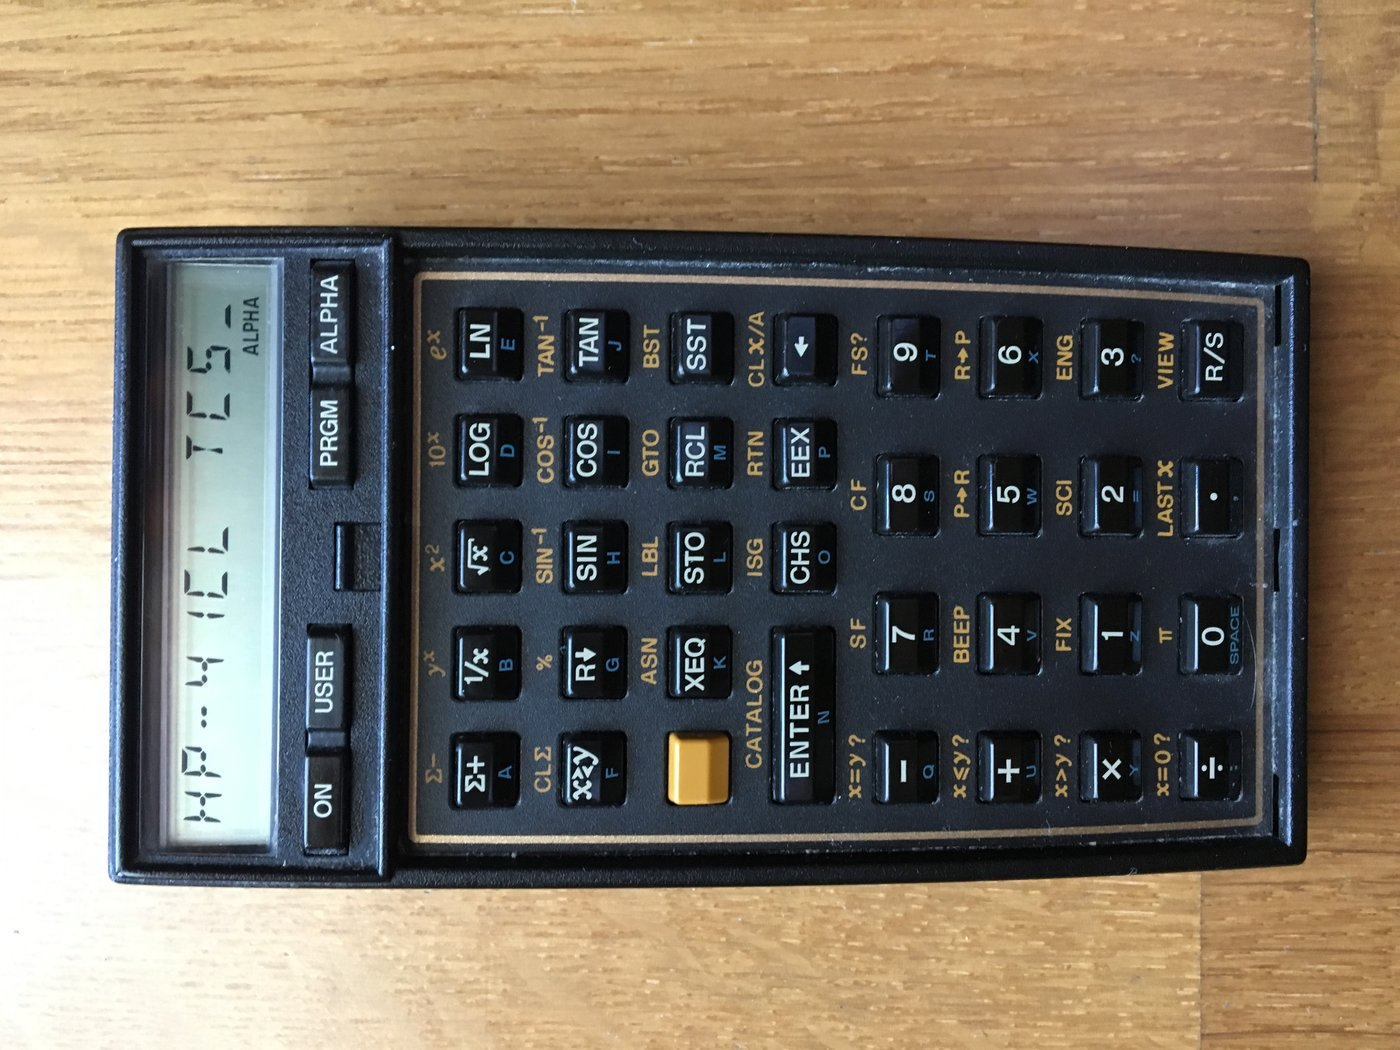 hp 41c scientific calculator - con caja - usada